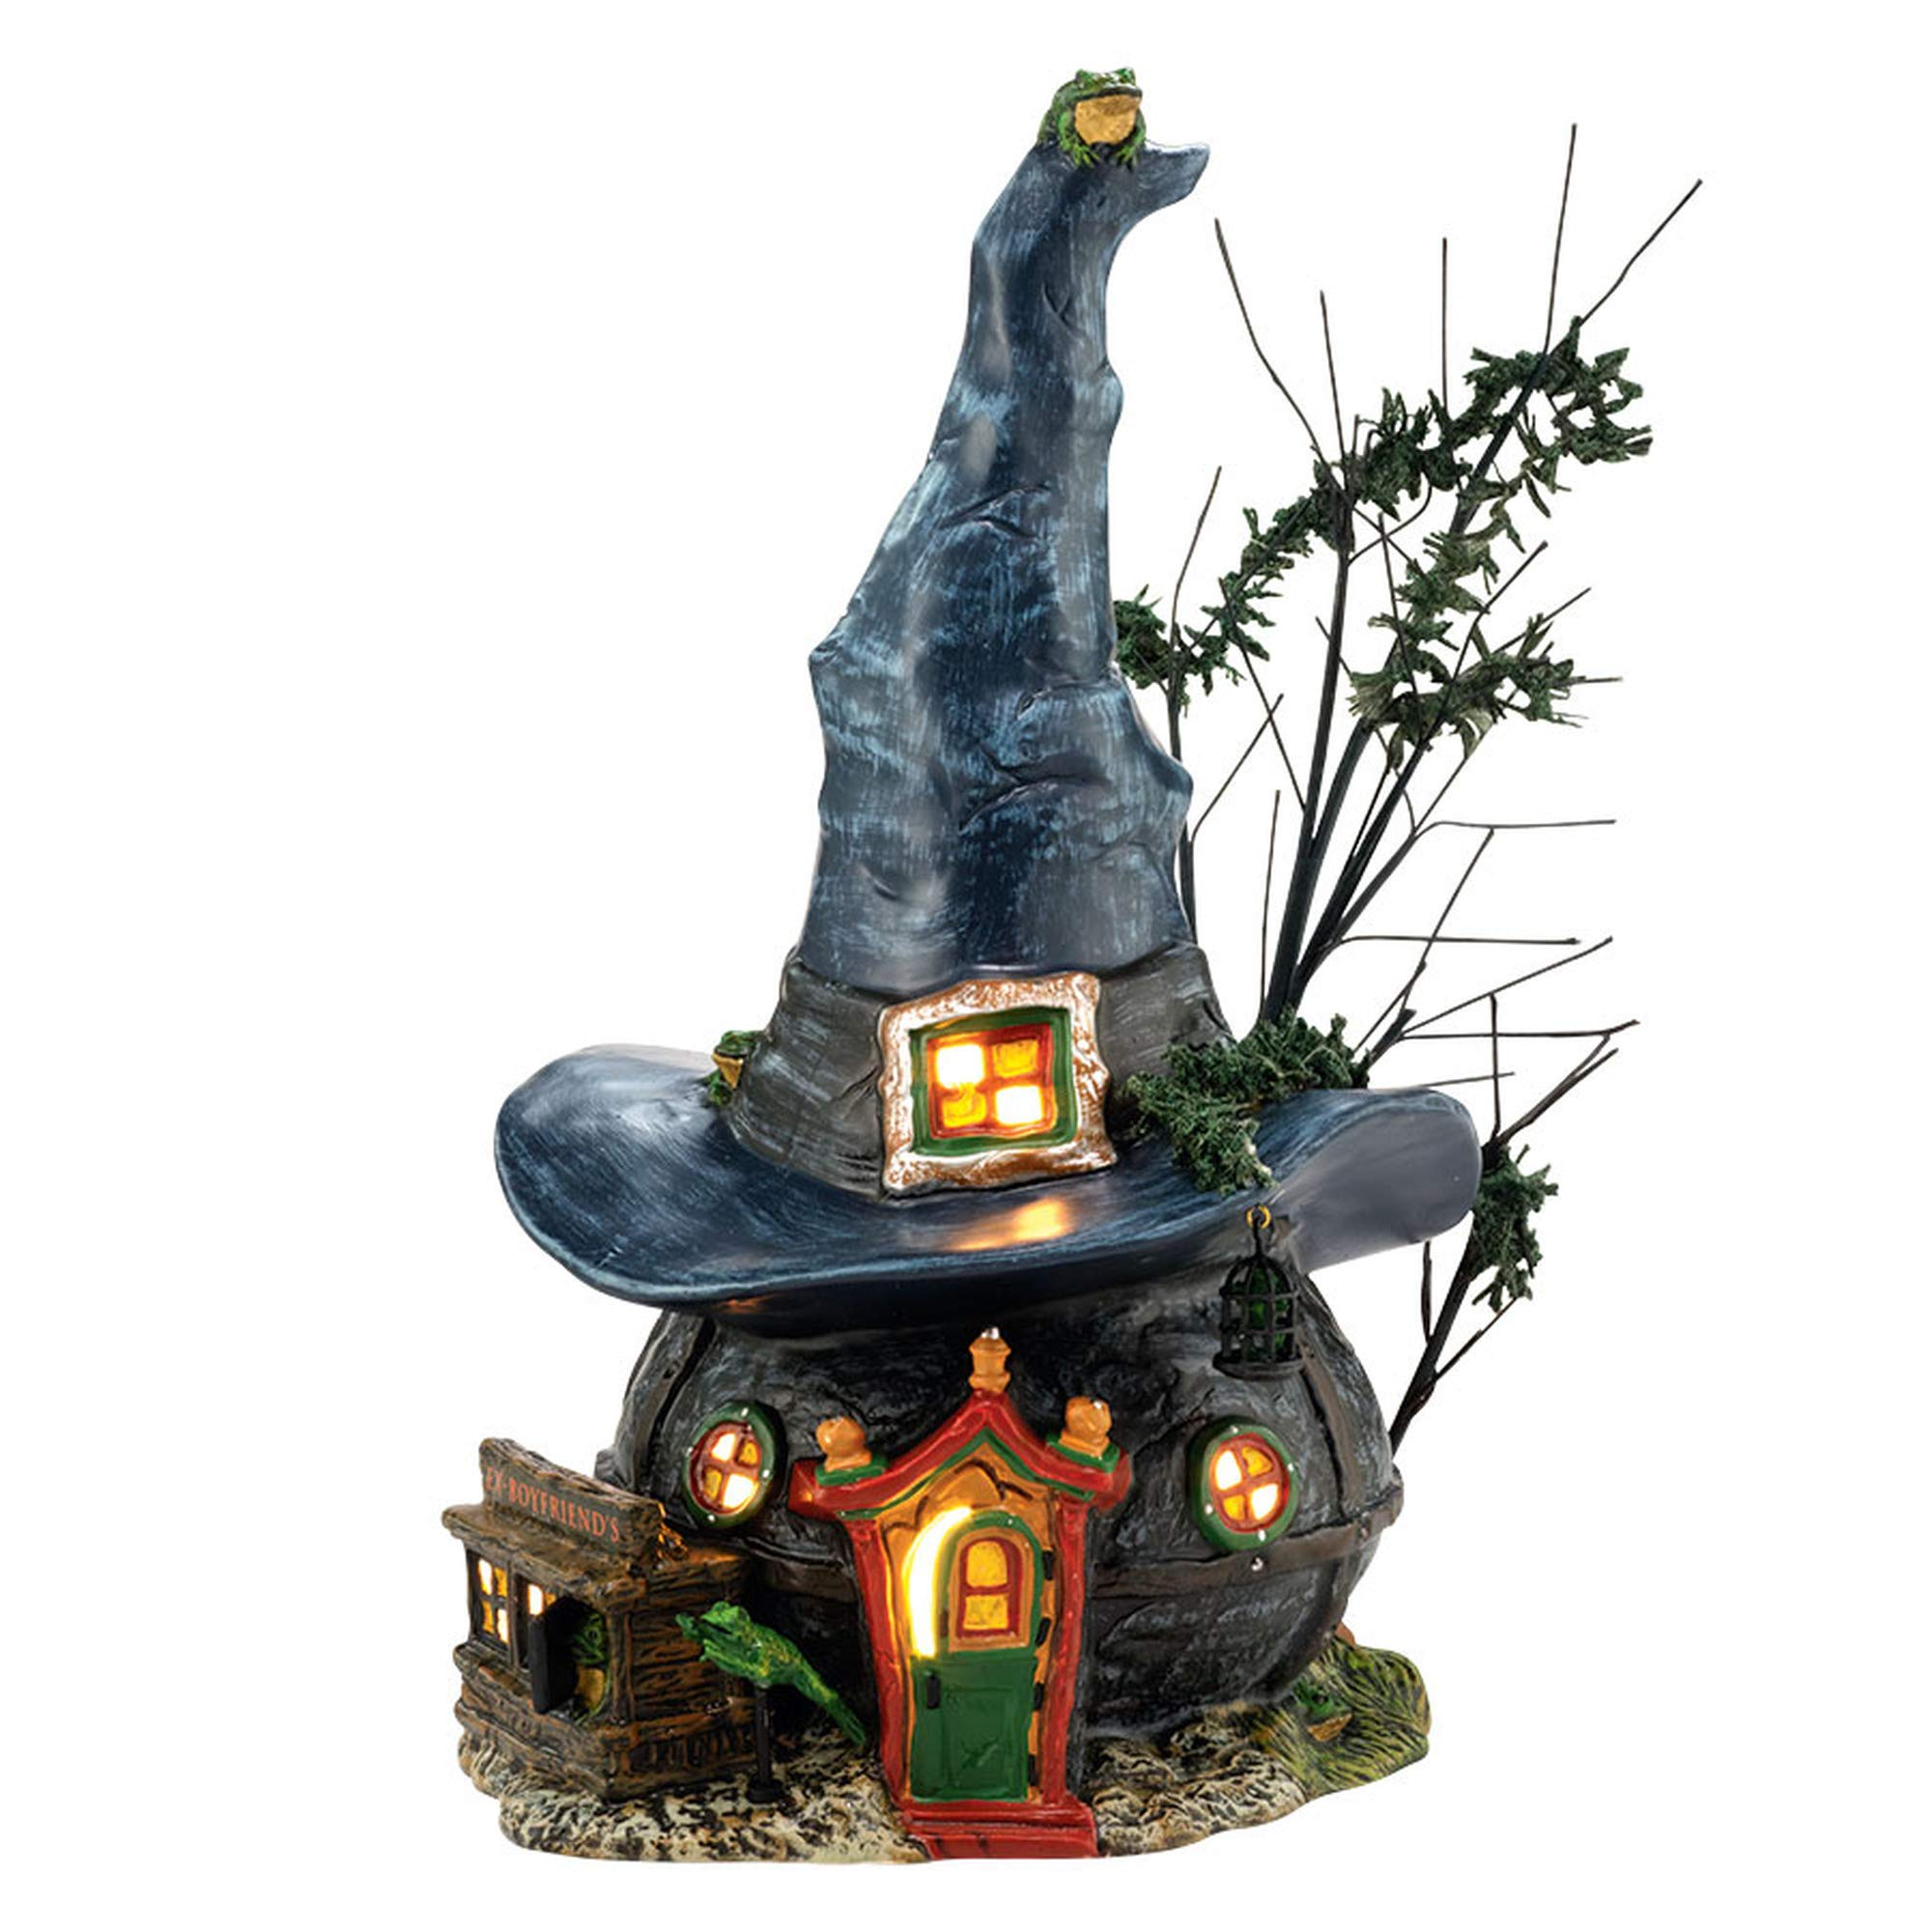 Department 56 Snow Village Halloween Toads and Frogs Witchcraft Haunt Lit House, 5.91 inch by Department 56